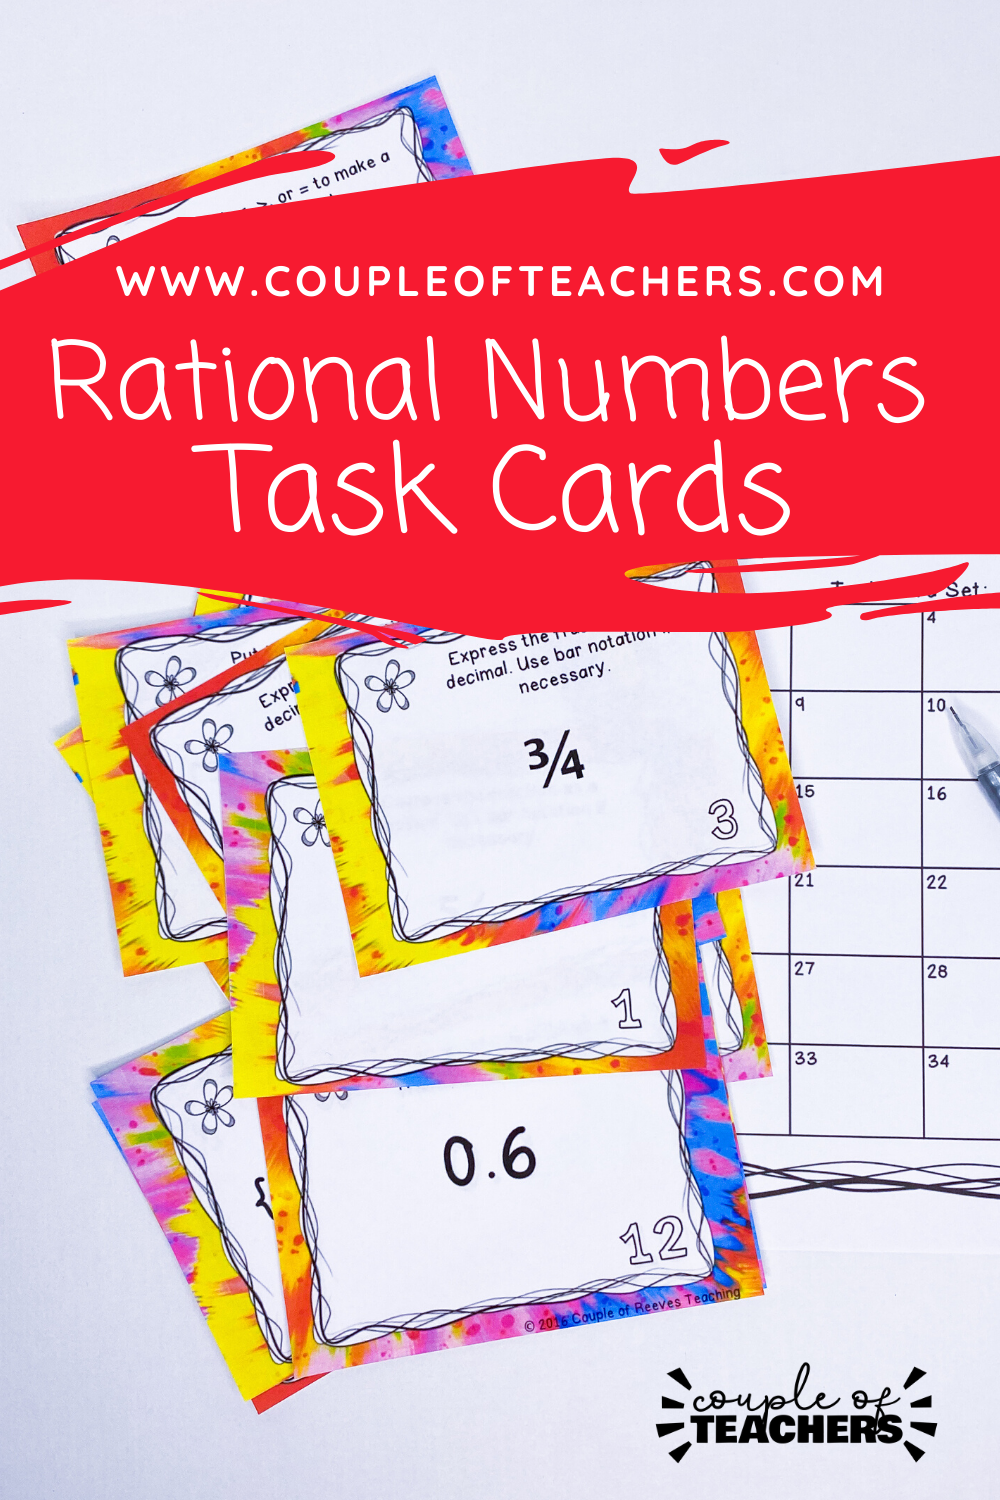 Rational Numbers Task Cards Google Slides and PDF